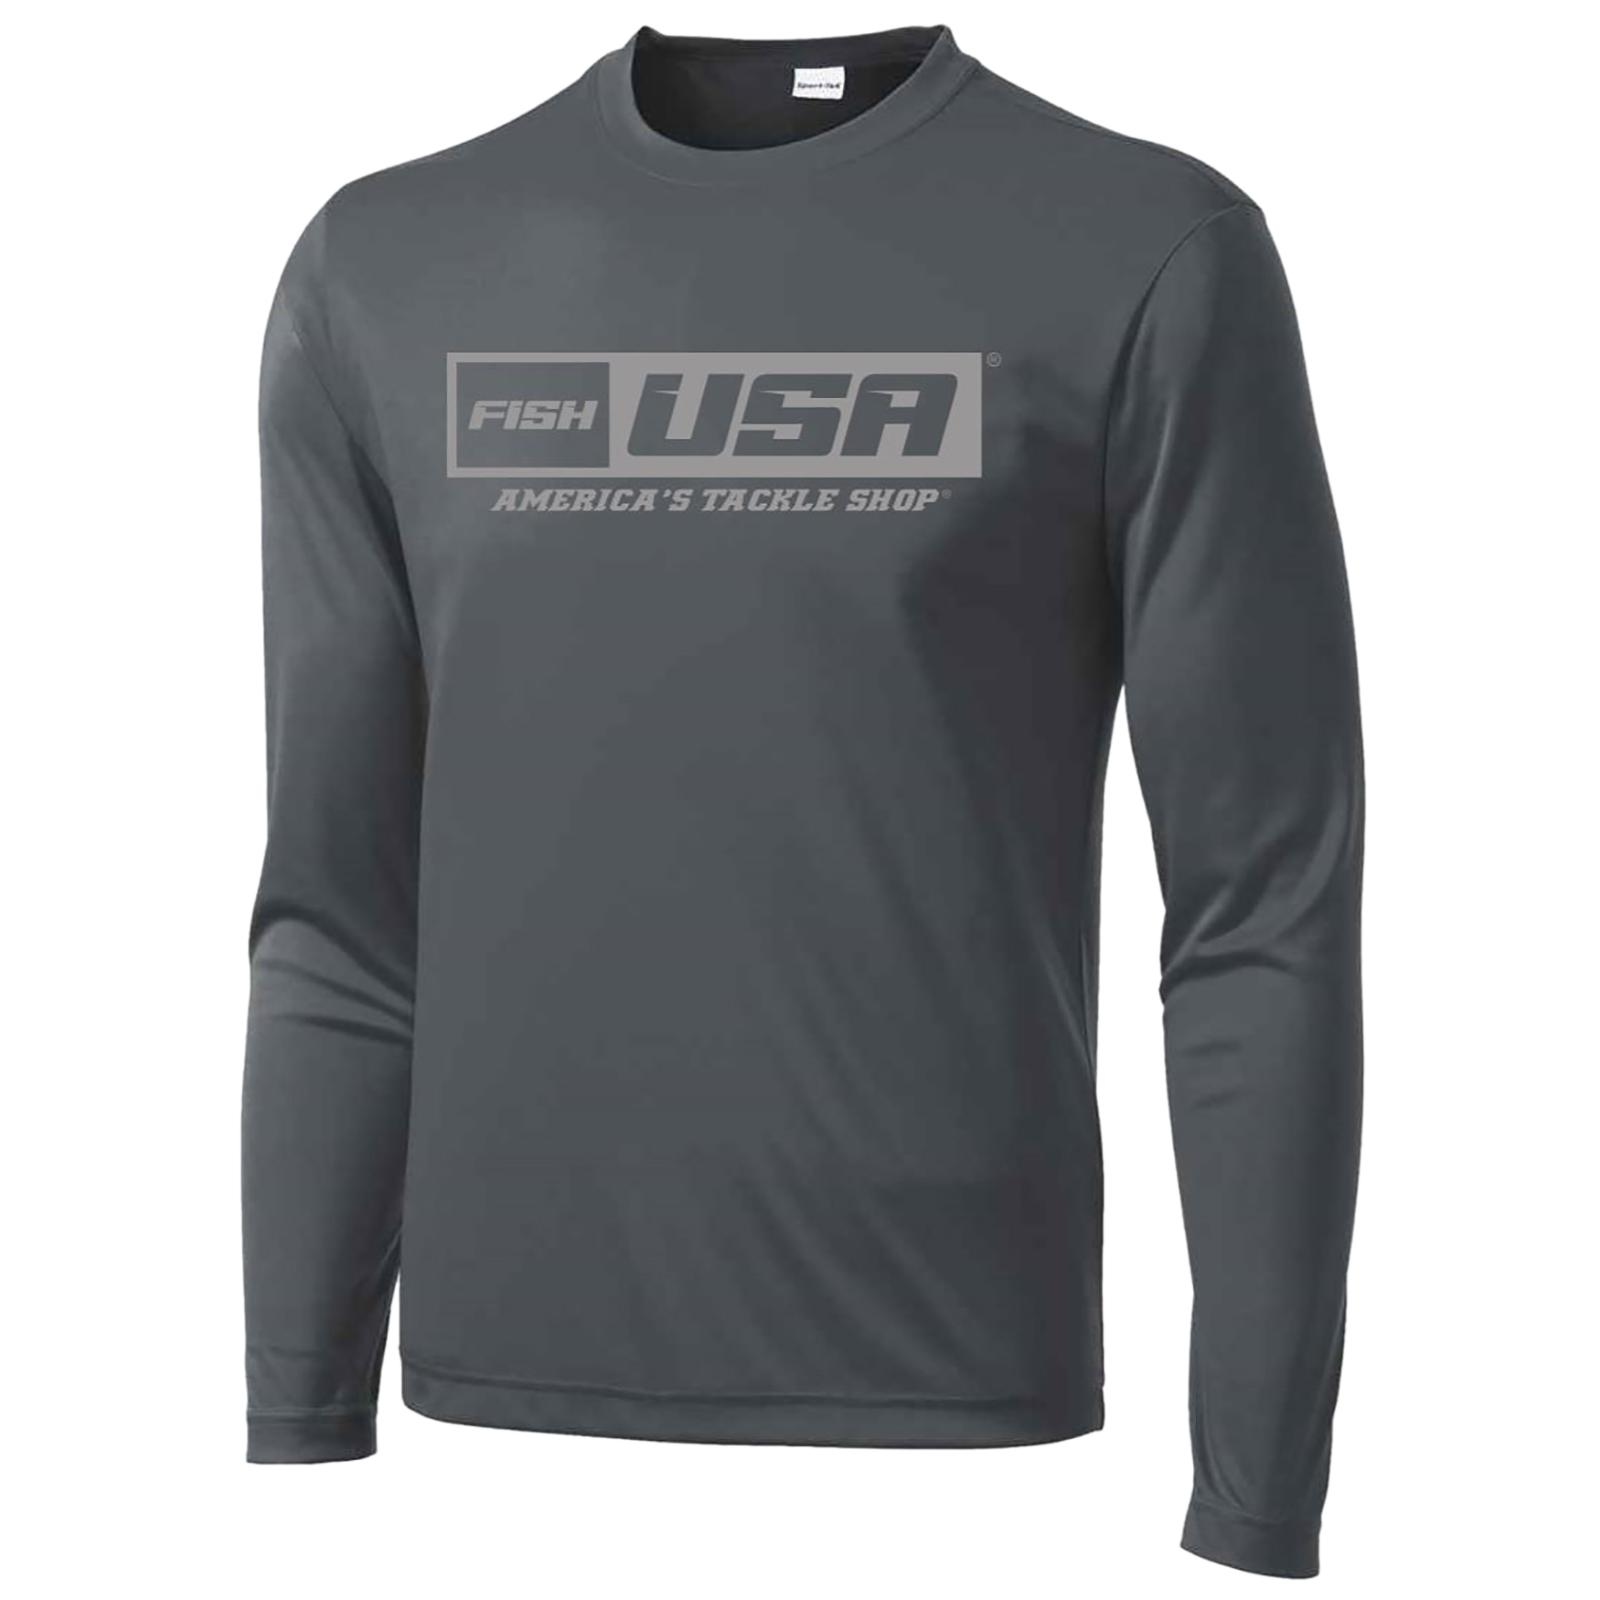 FishUSA Men's Hardcore Performance Long Sleeve Shirt Front